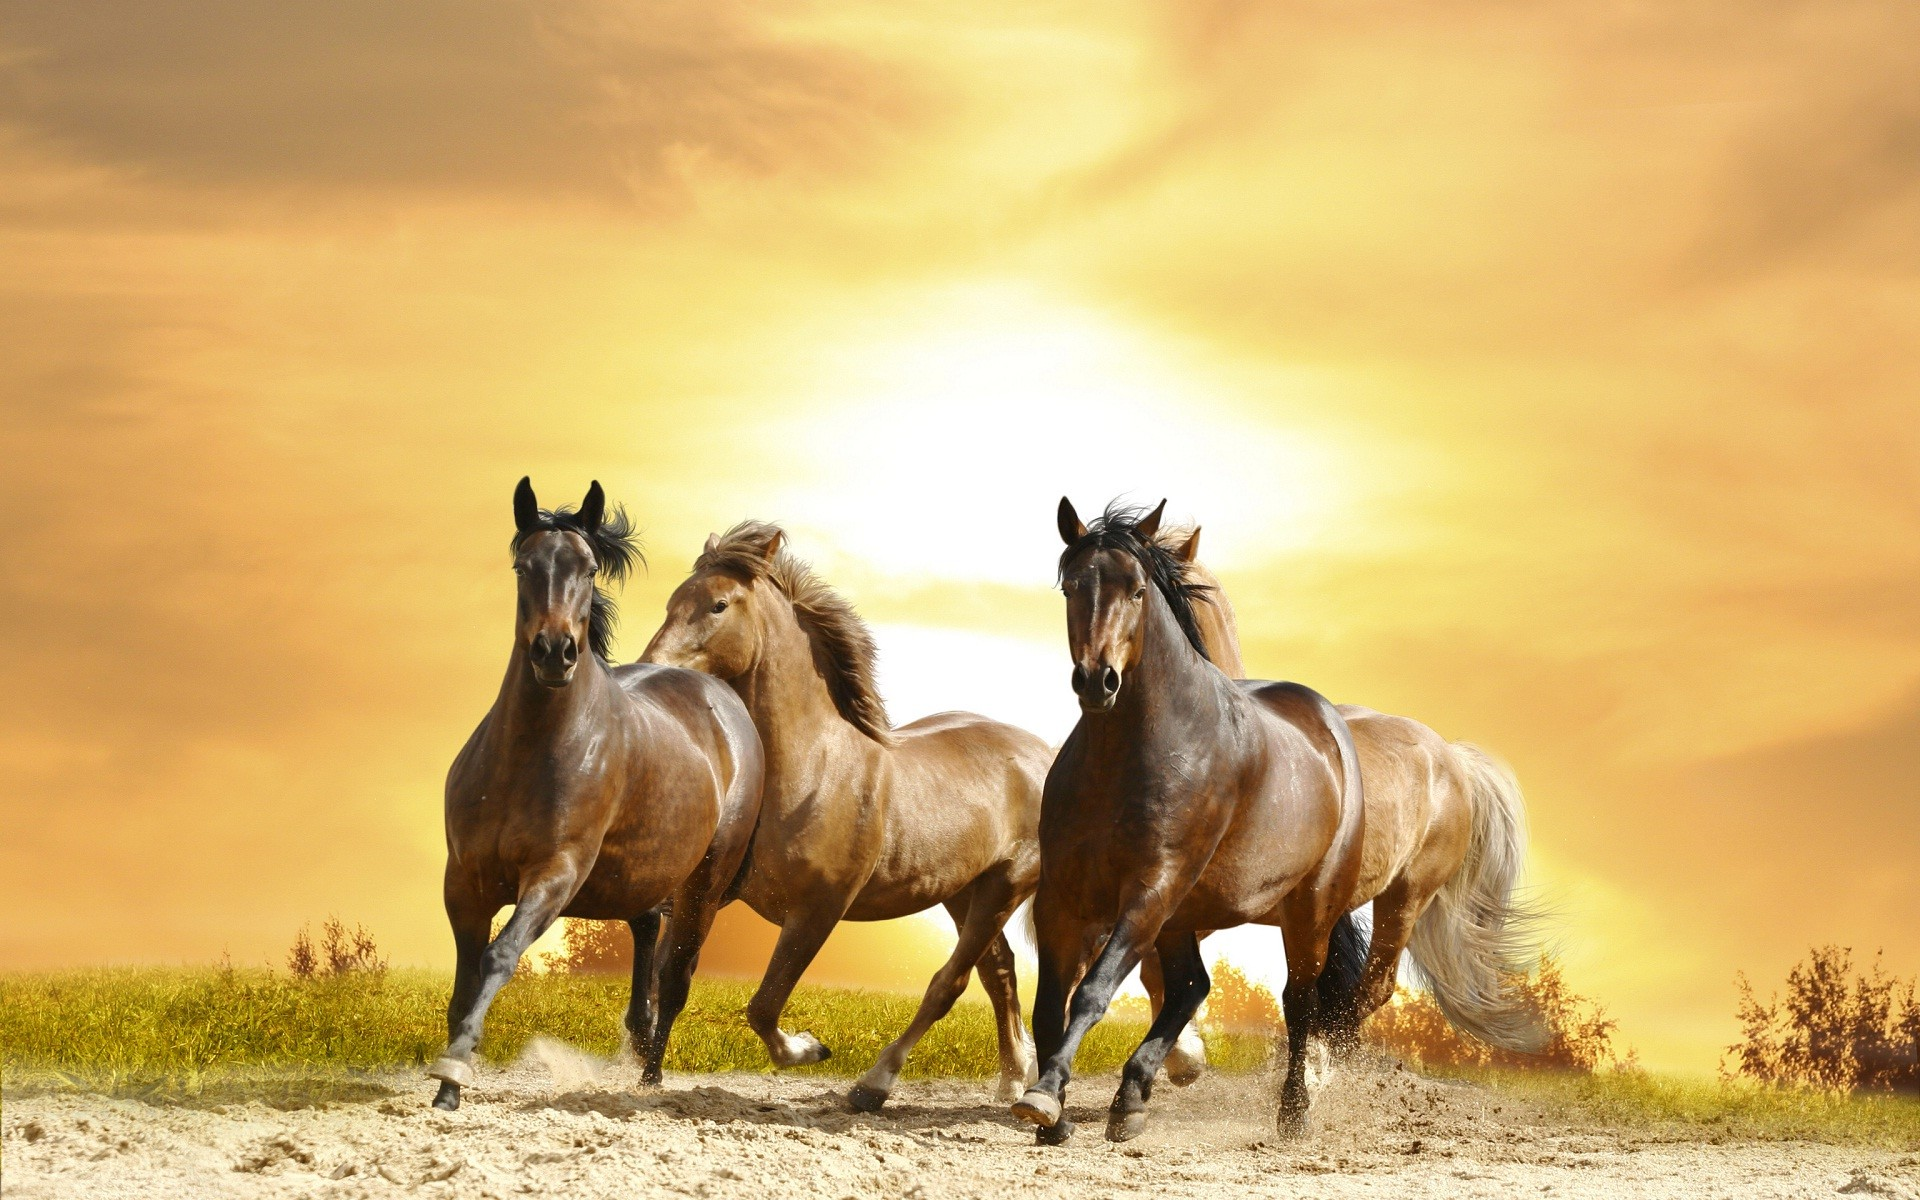 Horse Wallpapers For Computer 58 Background Pictures